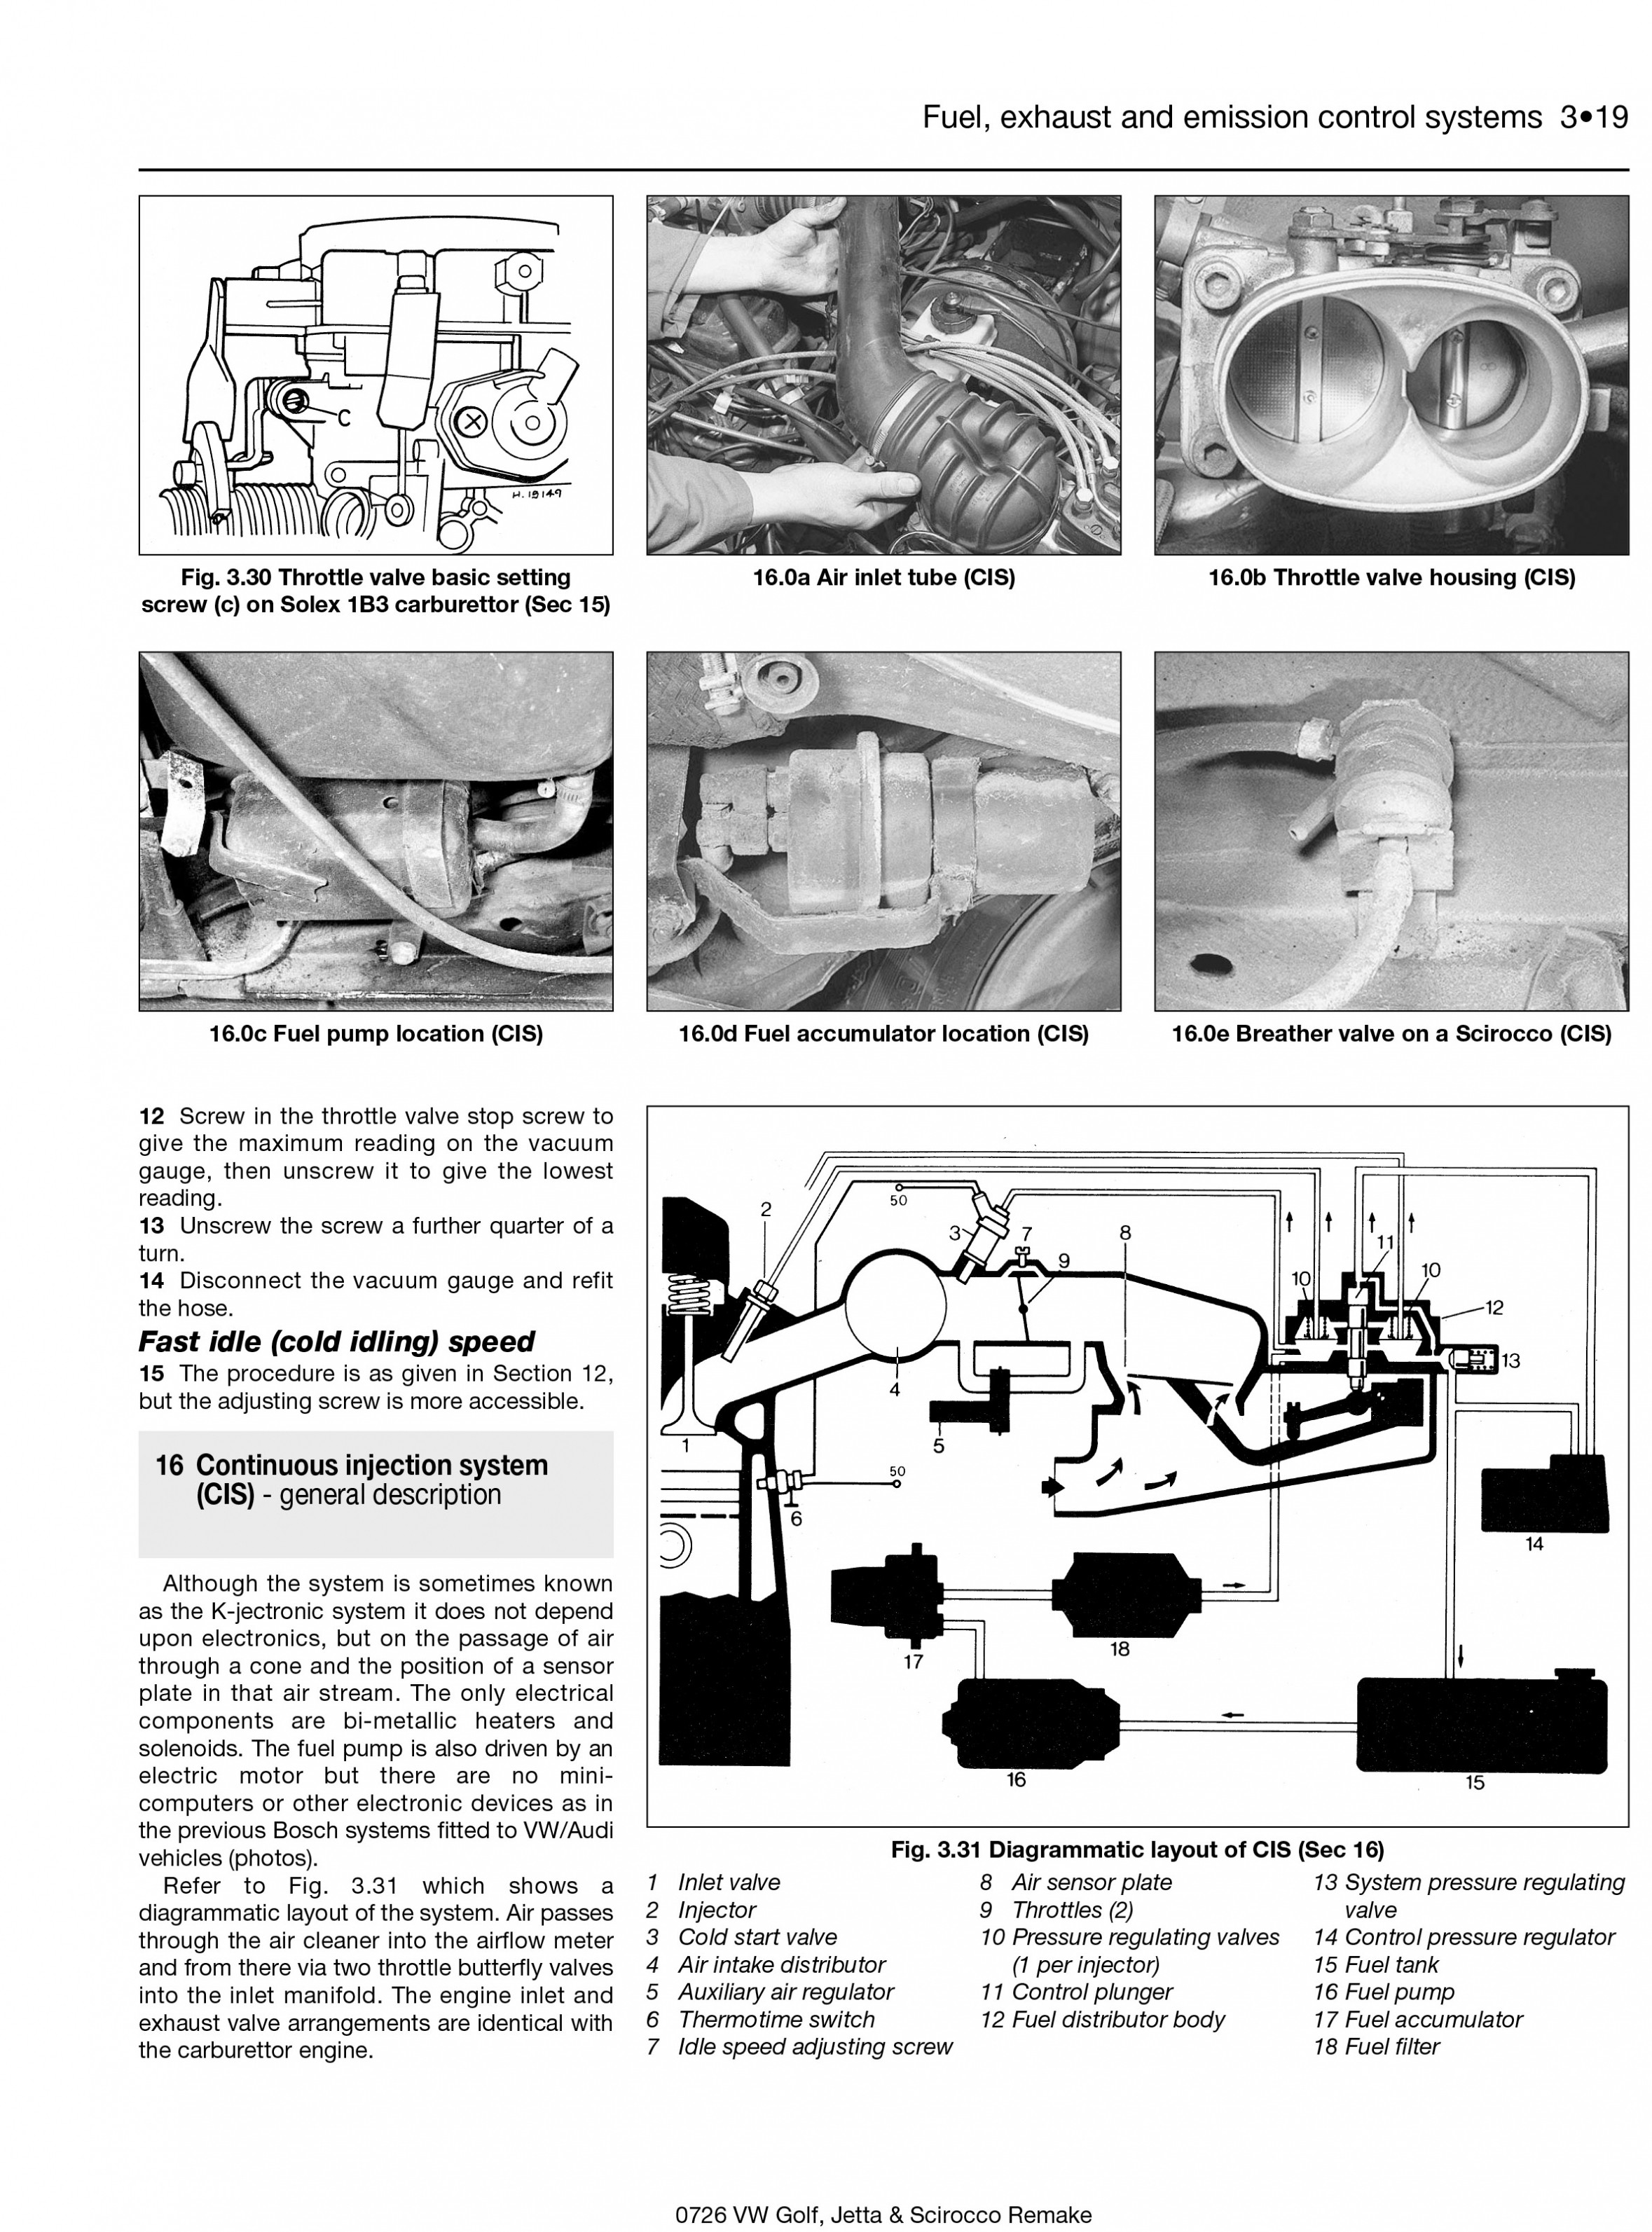 2015 Wrx Engine Diagram Cool Review About 2002 Wrx Engine with Breathtaking Of 2015 Wrx Engine Diagram Subaru Aa010 Genuine Oem Factory original Baffle Plate